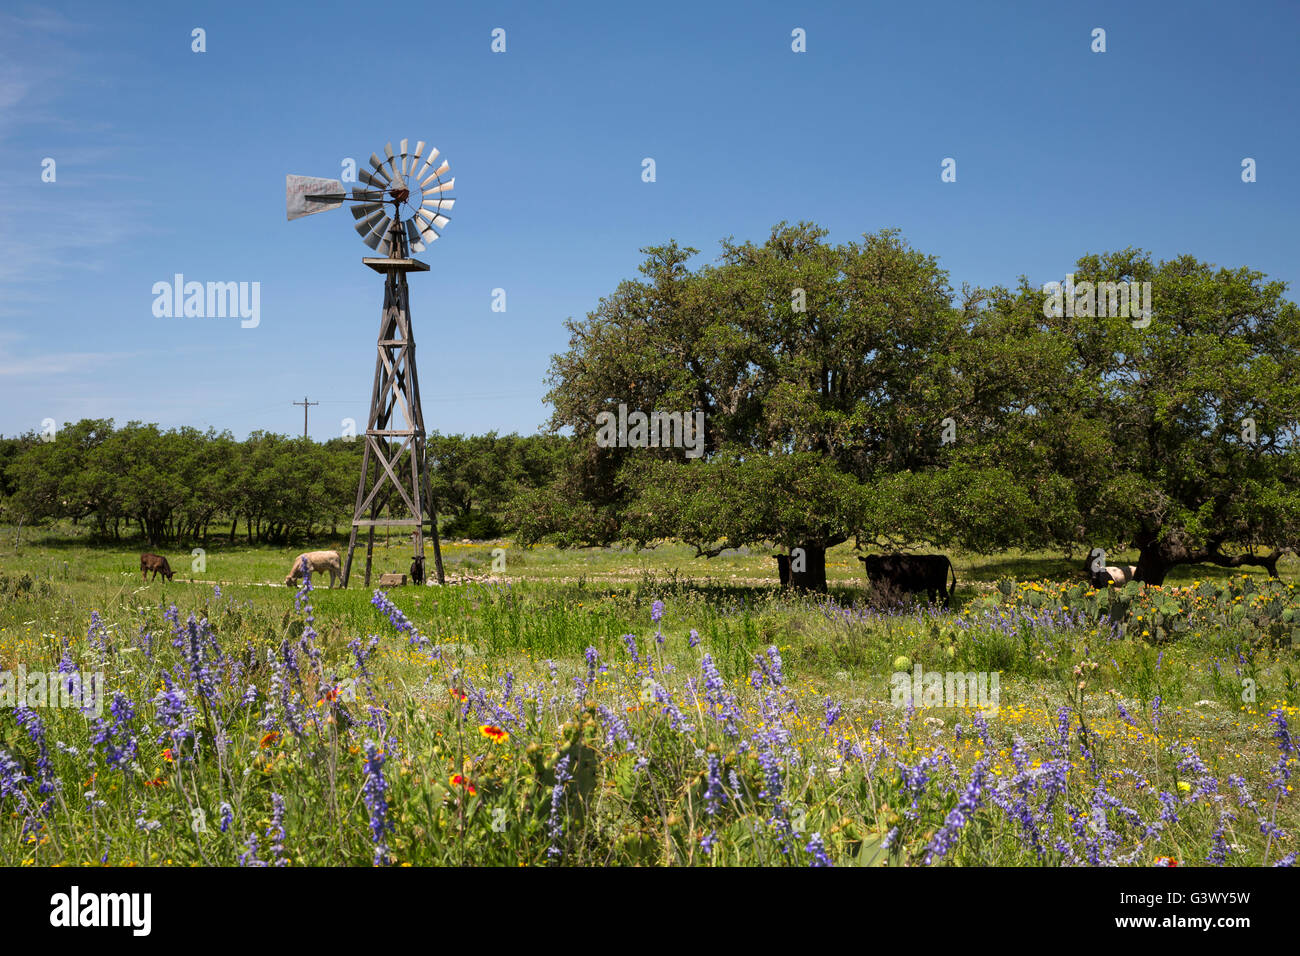 Texas ranch scene with windmill, longhorns, wildflowers, and oak trees - Stock Image